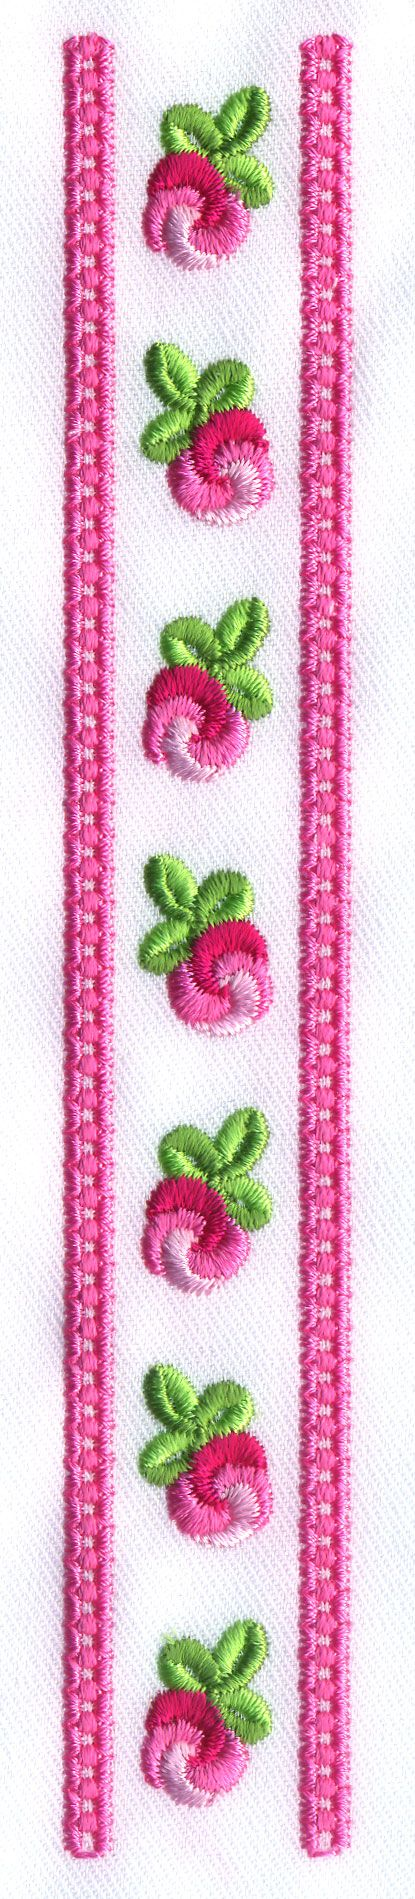 2013 Recolored Vintage Machine Embroidery Designs